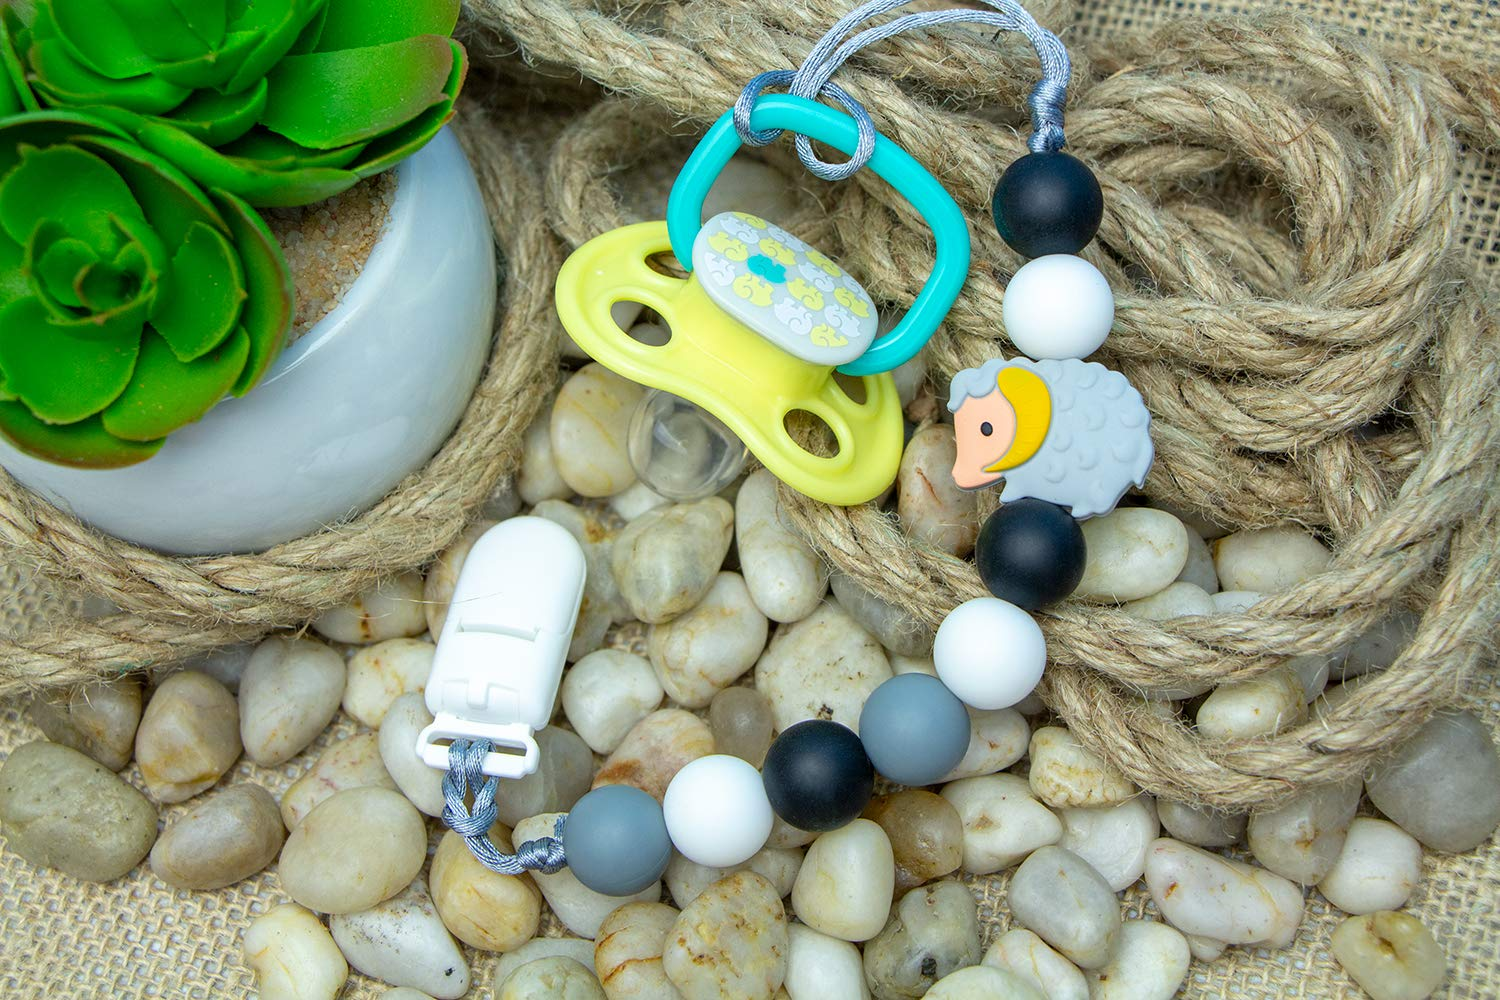 Ram Pacifier Clip Holder Handmade in Canada Green Soothie or Other Pacifiers NUK Tommee Tippee // High Quality Silicone Teething Beads Compatible with MAM